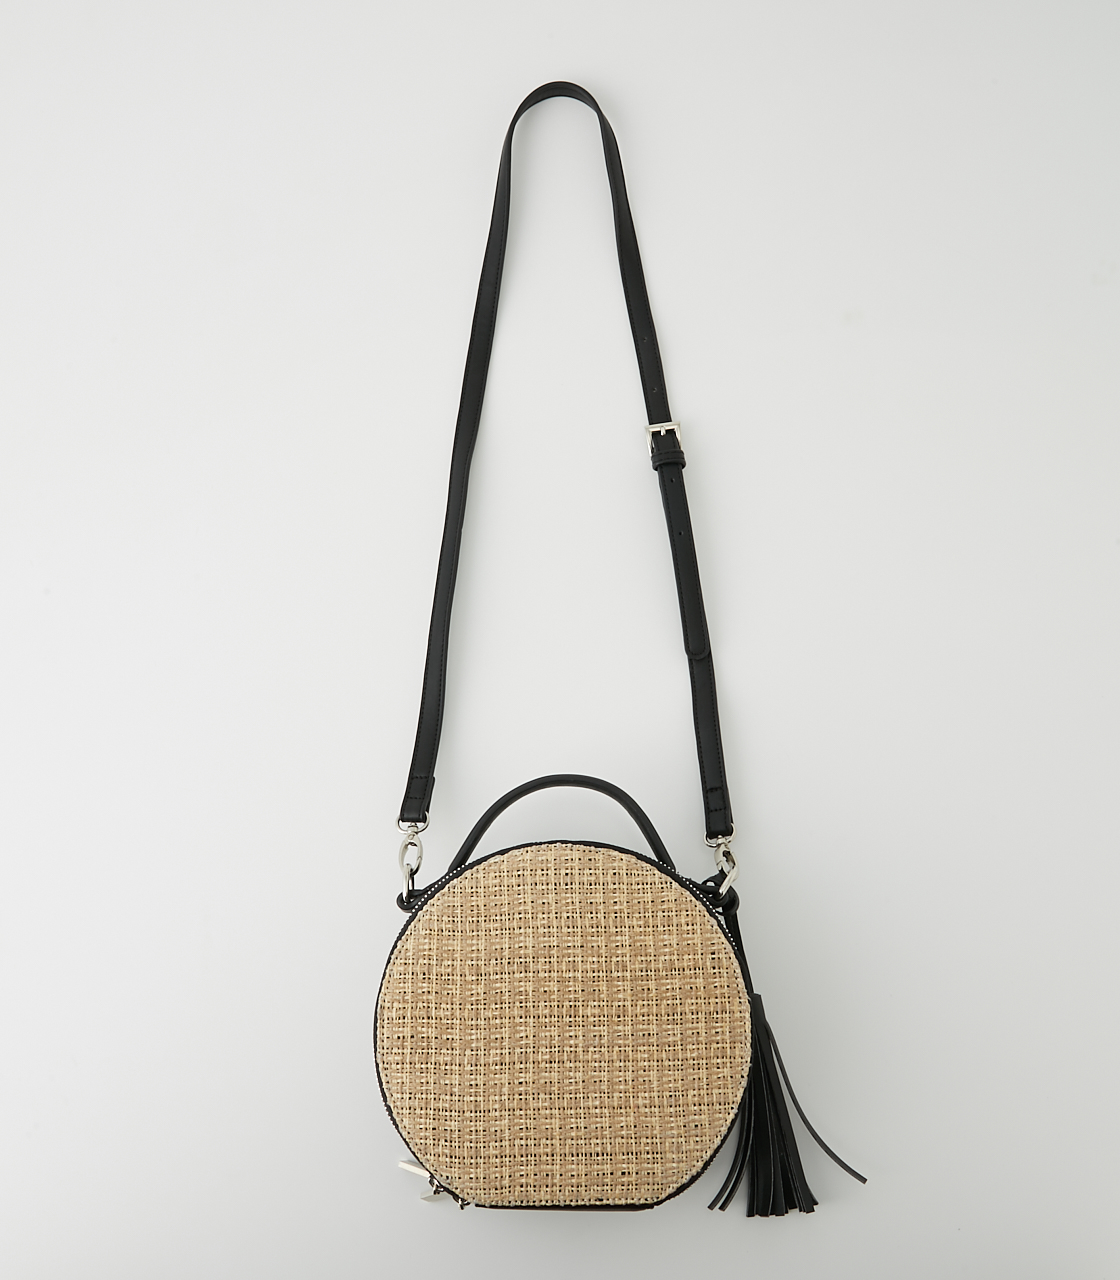 CIRCLE STRAWMESH SHOULDER BAG 詳細画像 柄BLK 1